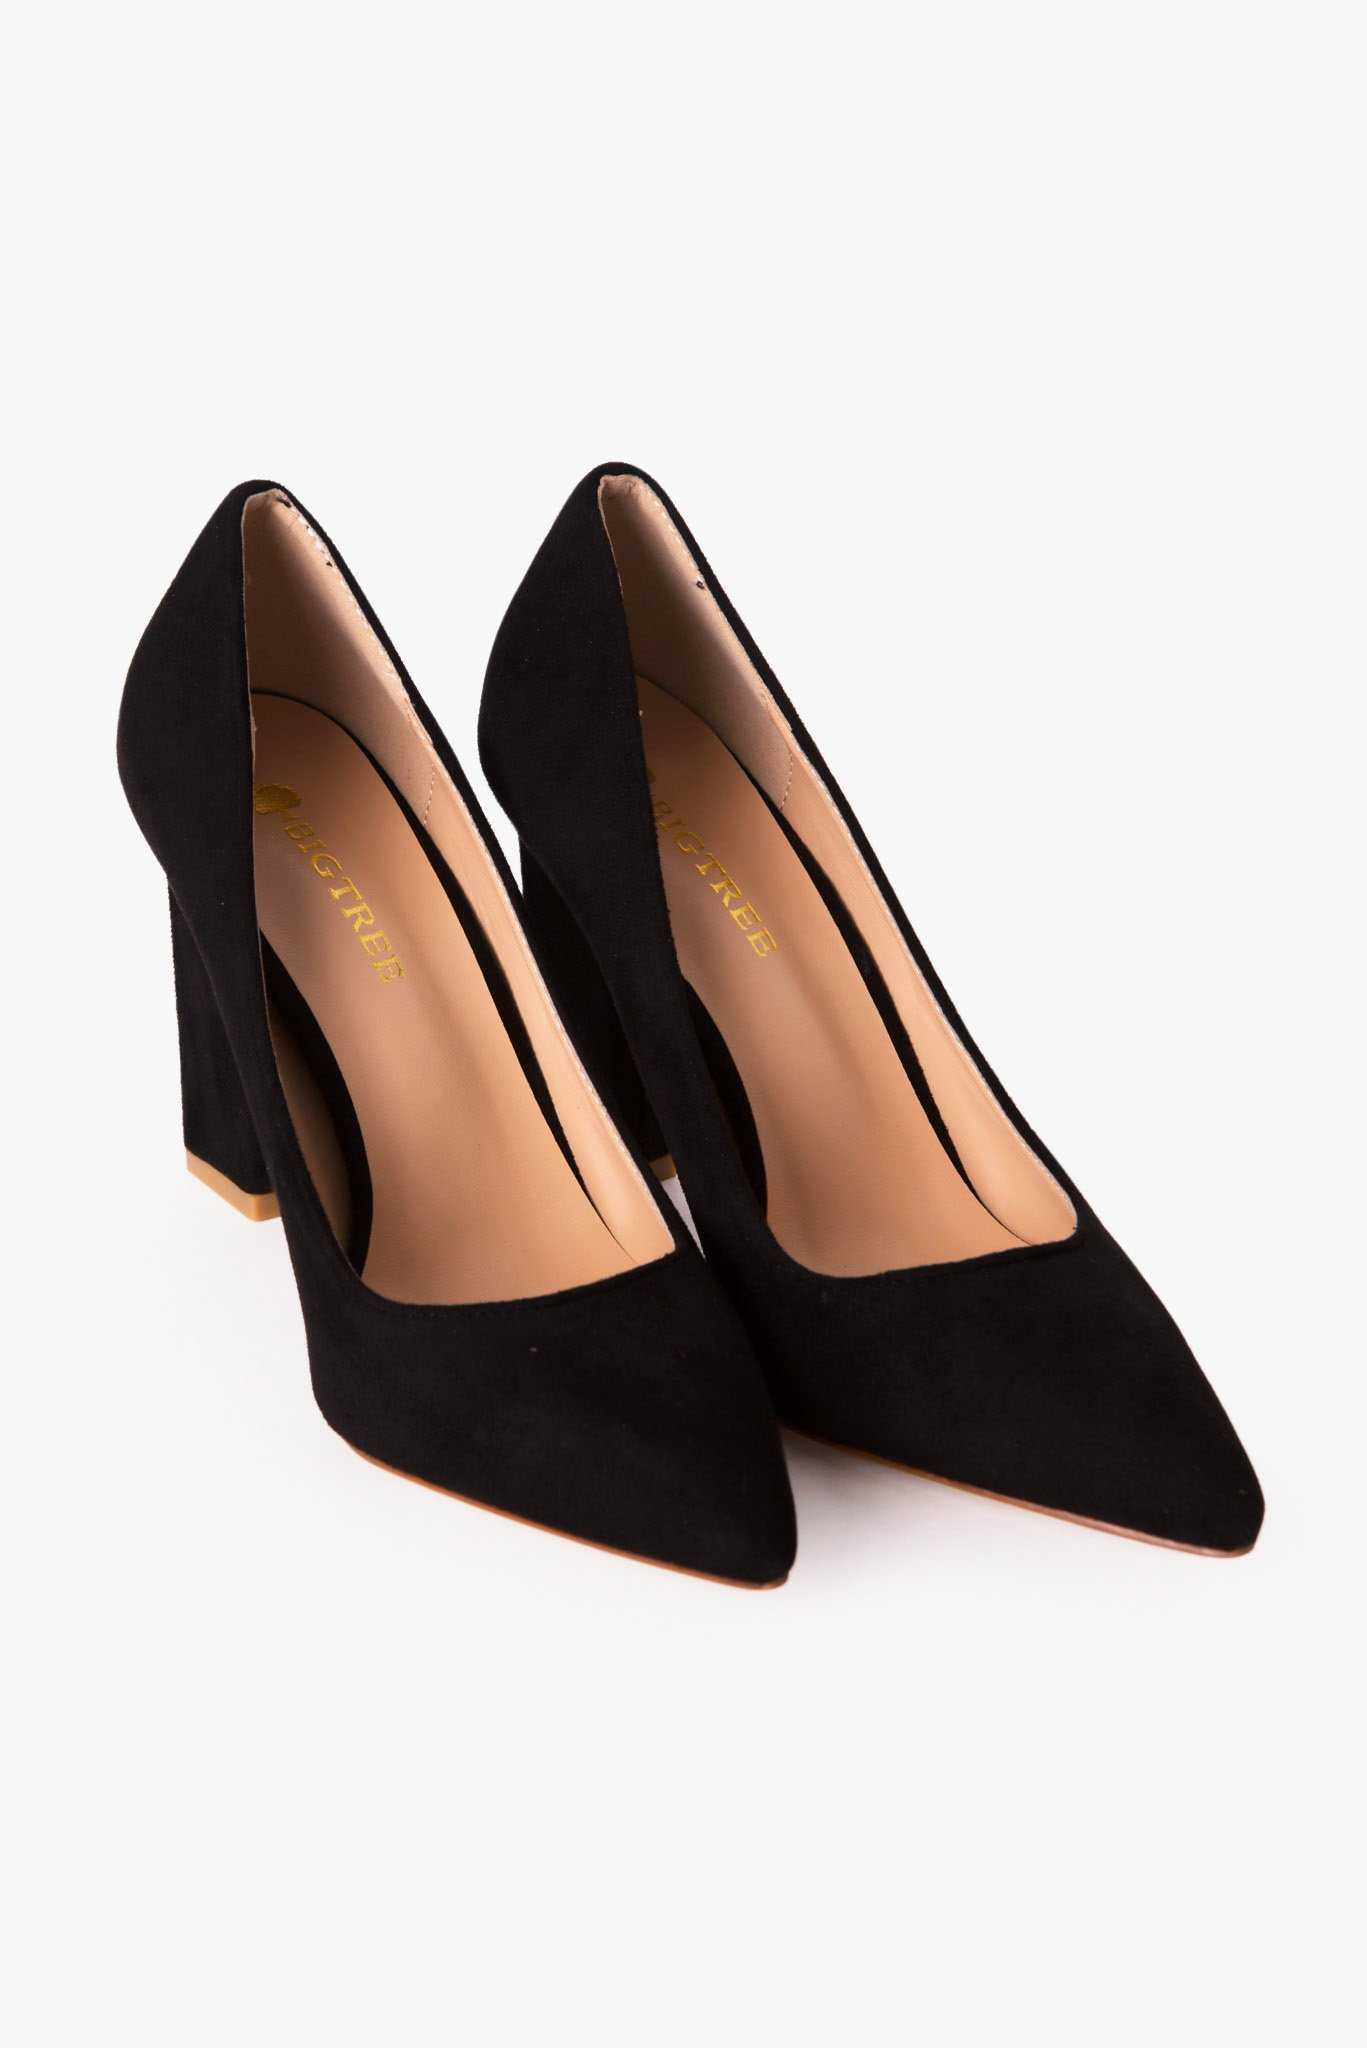 Basic Pumps - Black | Raw Orange